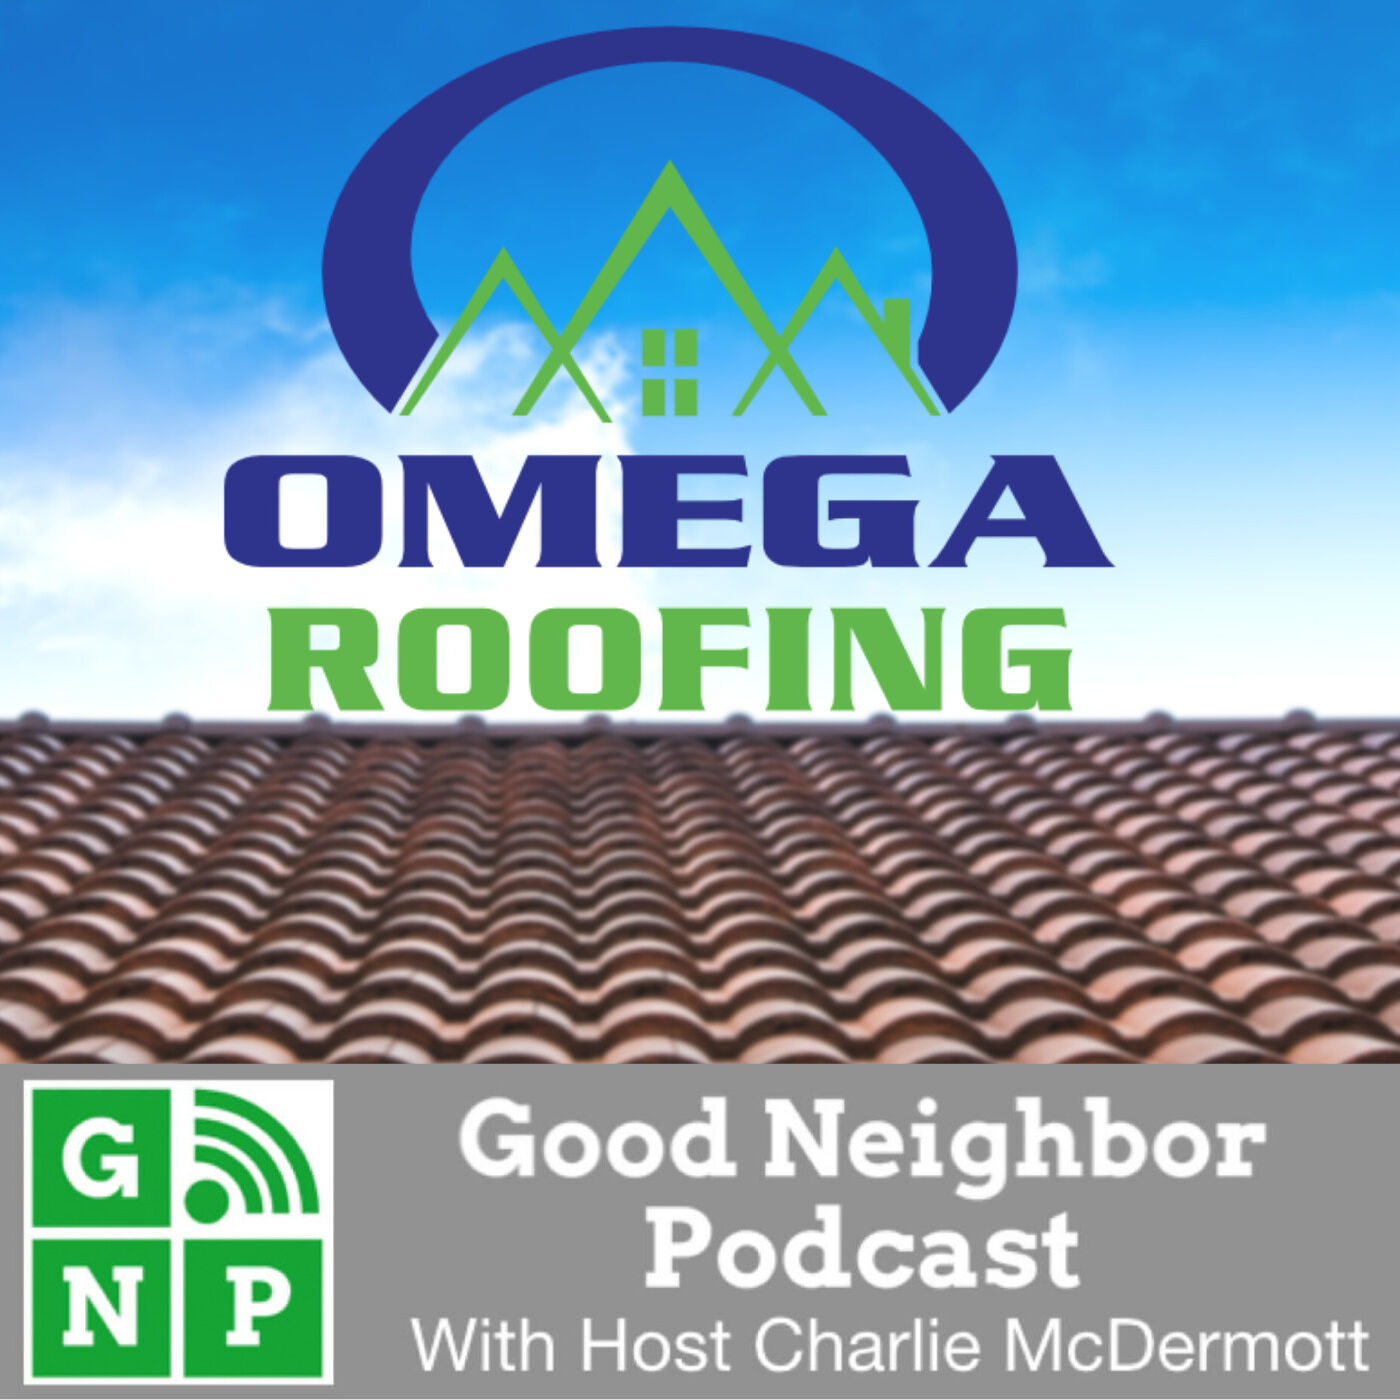 EP #457: Omega Roofing with Tori Bobbs